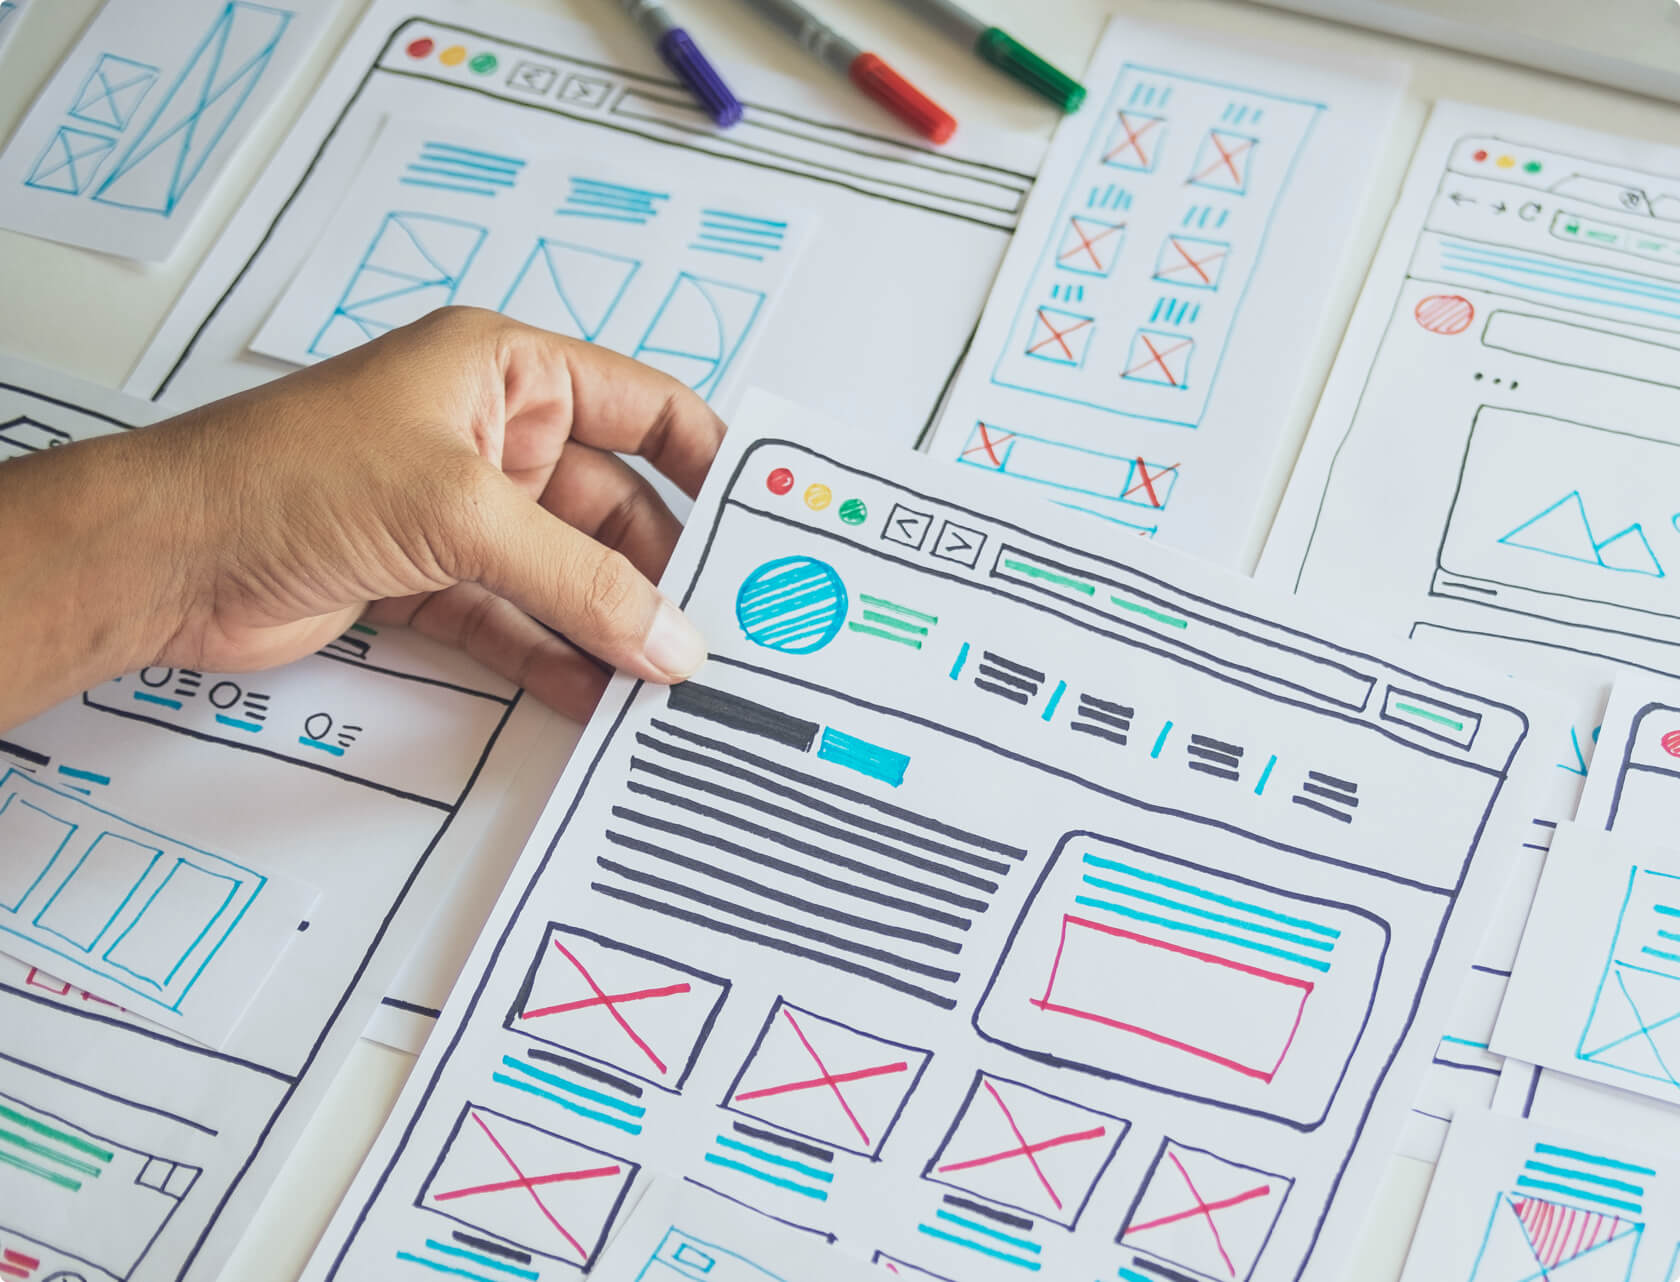 A product design sketching